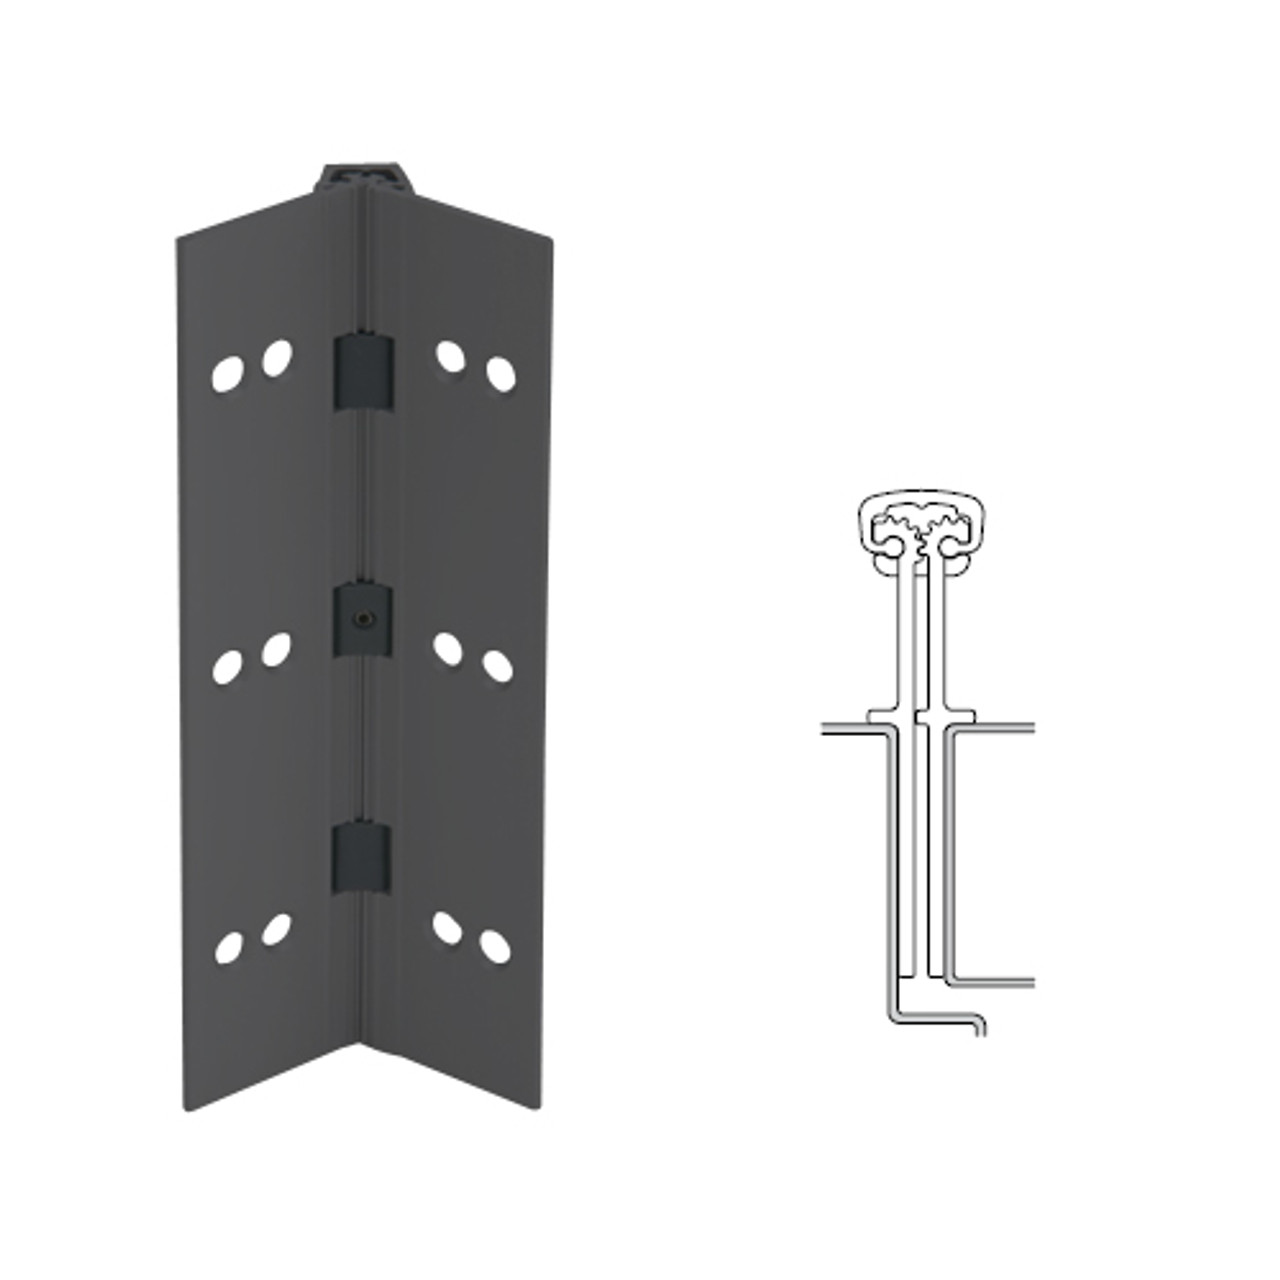 040XY-315AN-85-SECWDHM IVES Full Mortise Continuous Geared Hinges with Security Screws - Hex Pin Drive in Anodized Black